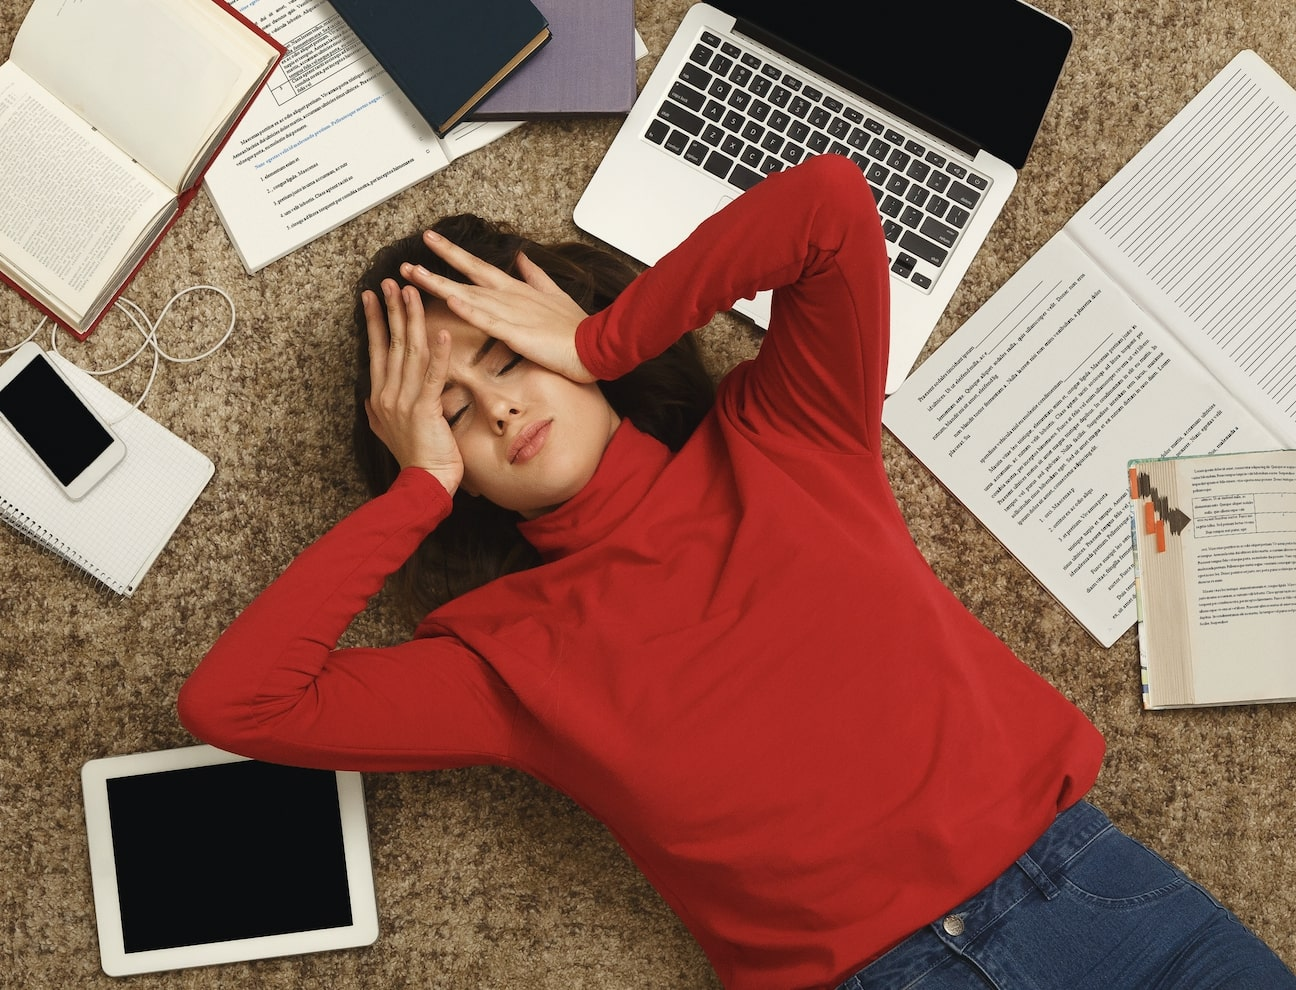 woman-in-red-laying-with-books-stressed